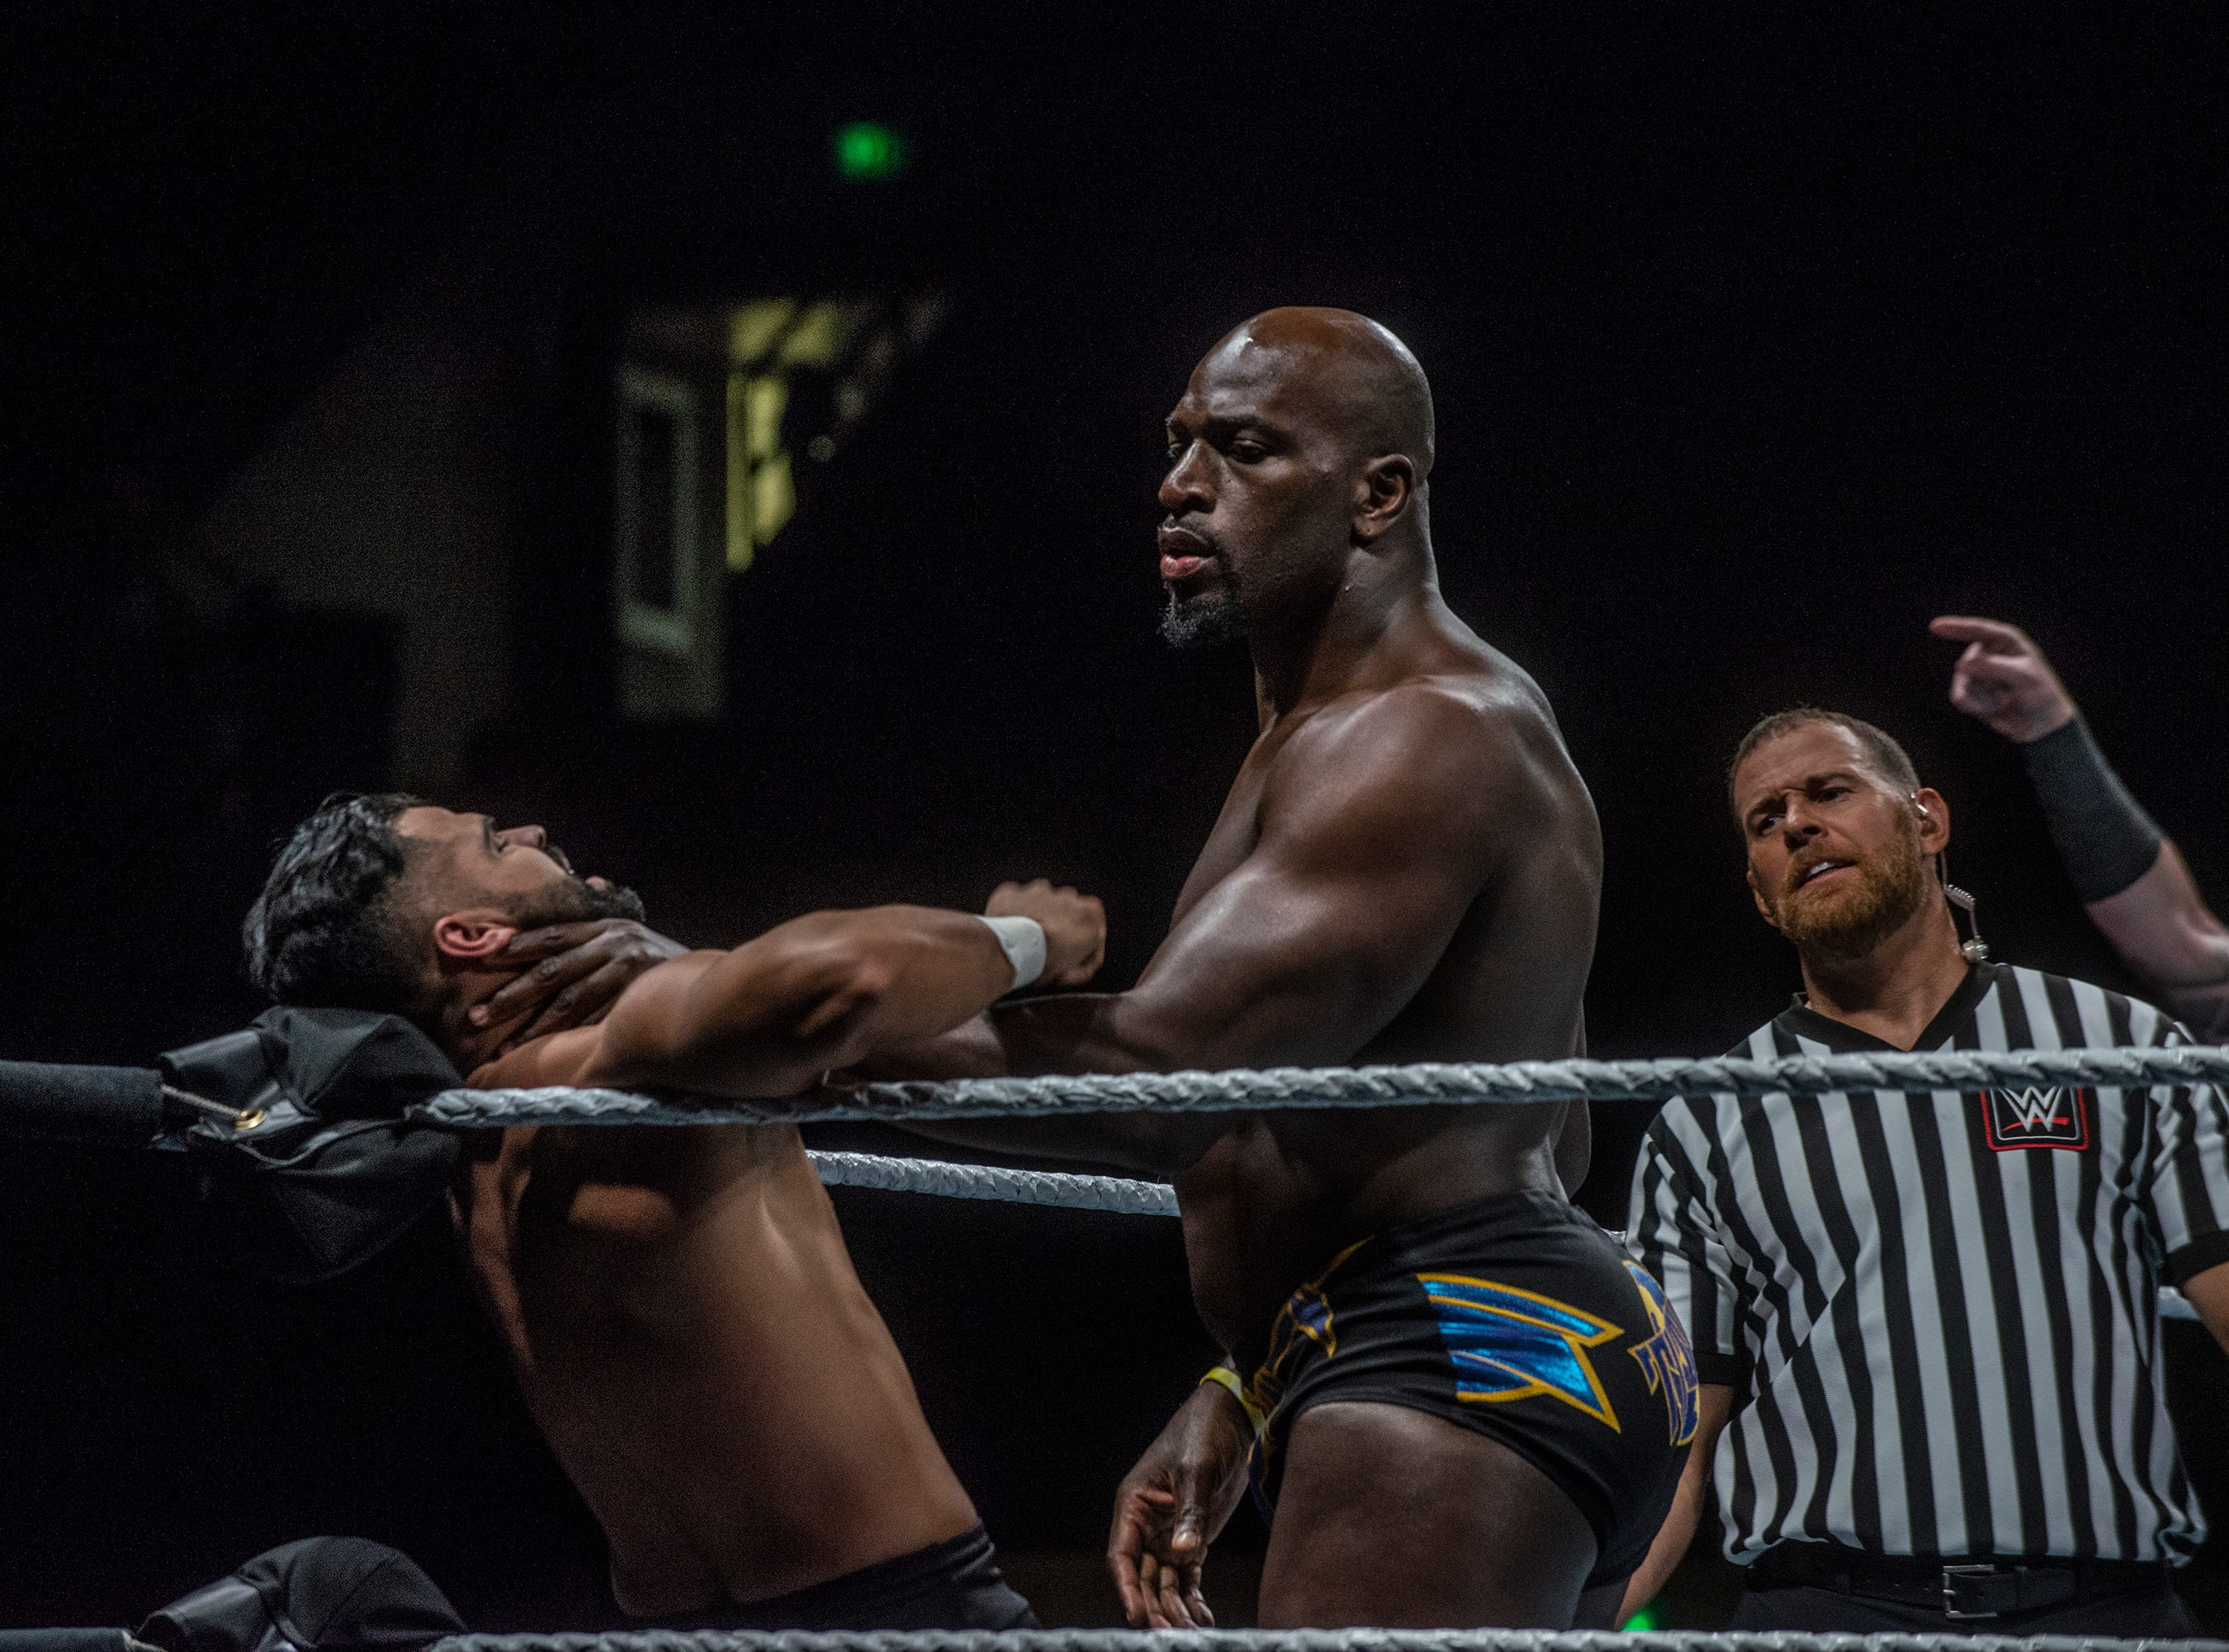 Titus O'Neil pins one of the Singh brothers in a corner. The Singh Brothers and Jinder Mahal in a six man tag team match against Titus OÕNeil, Heath Slater and Rhyno. WWE Live Road to Wrestlemania came to Garrett Coliseum in Montgomery on Sunday, Feb. 24, 2019.